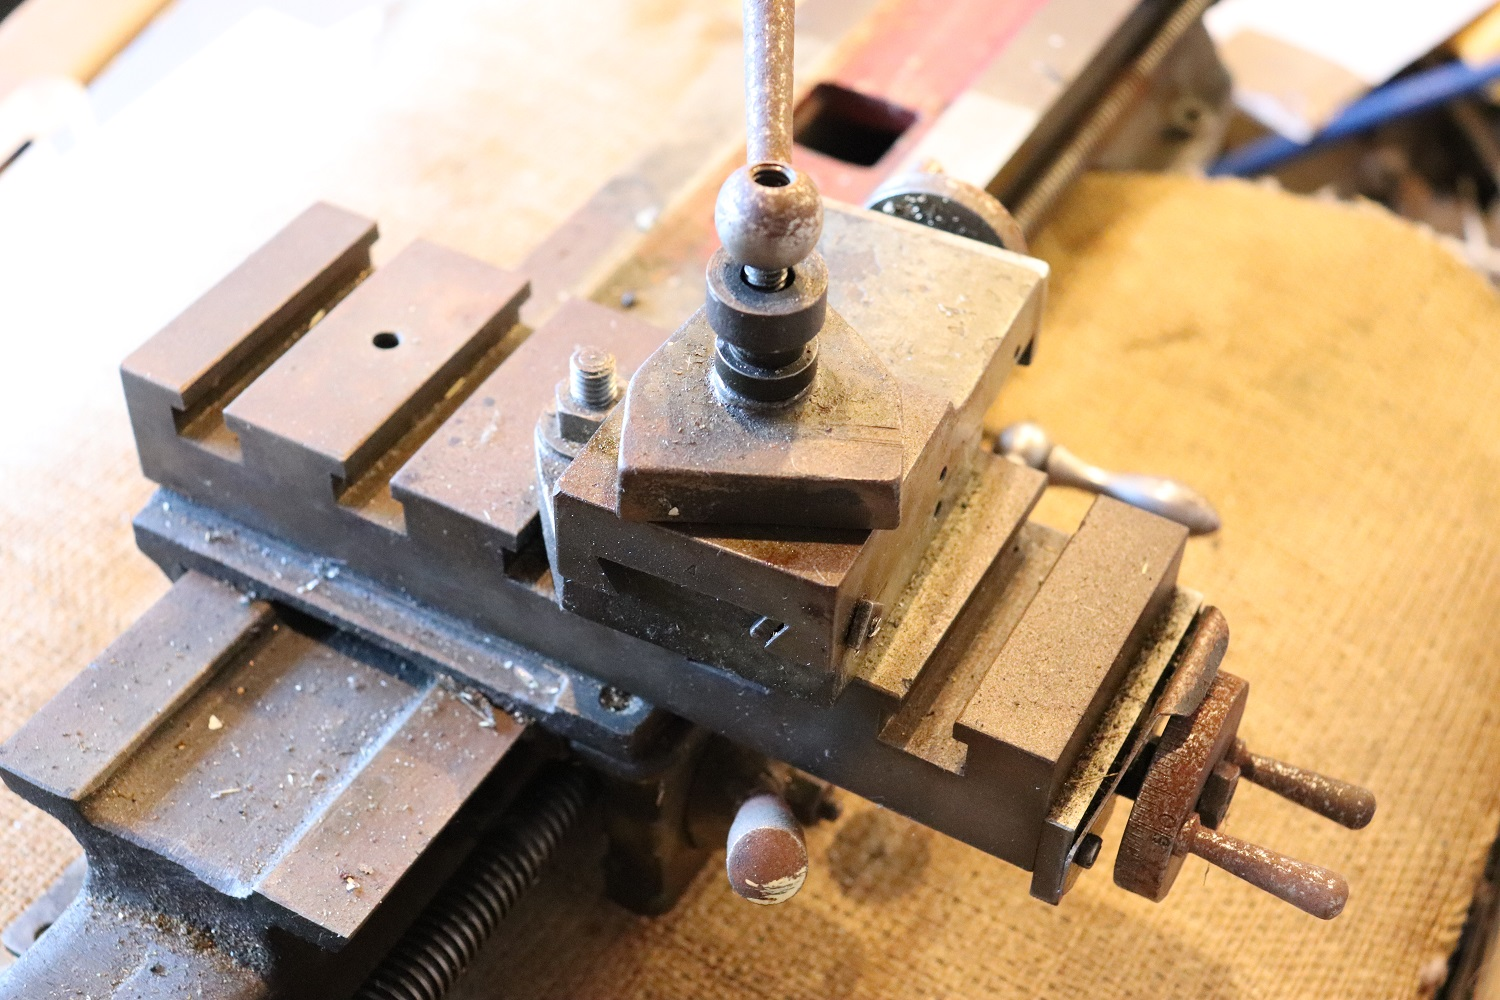 The lathe carriage